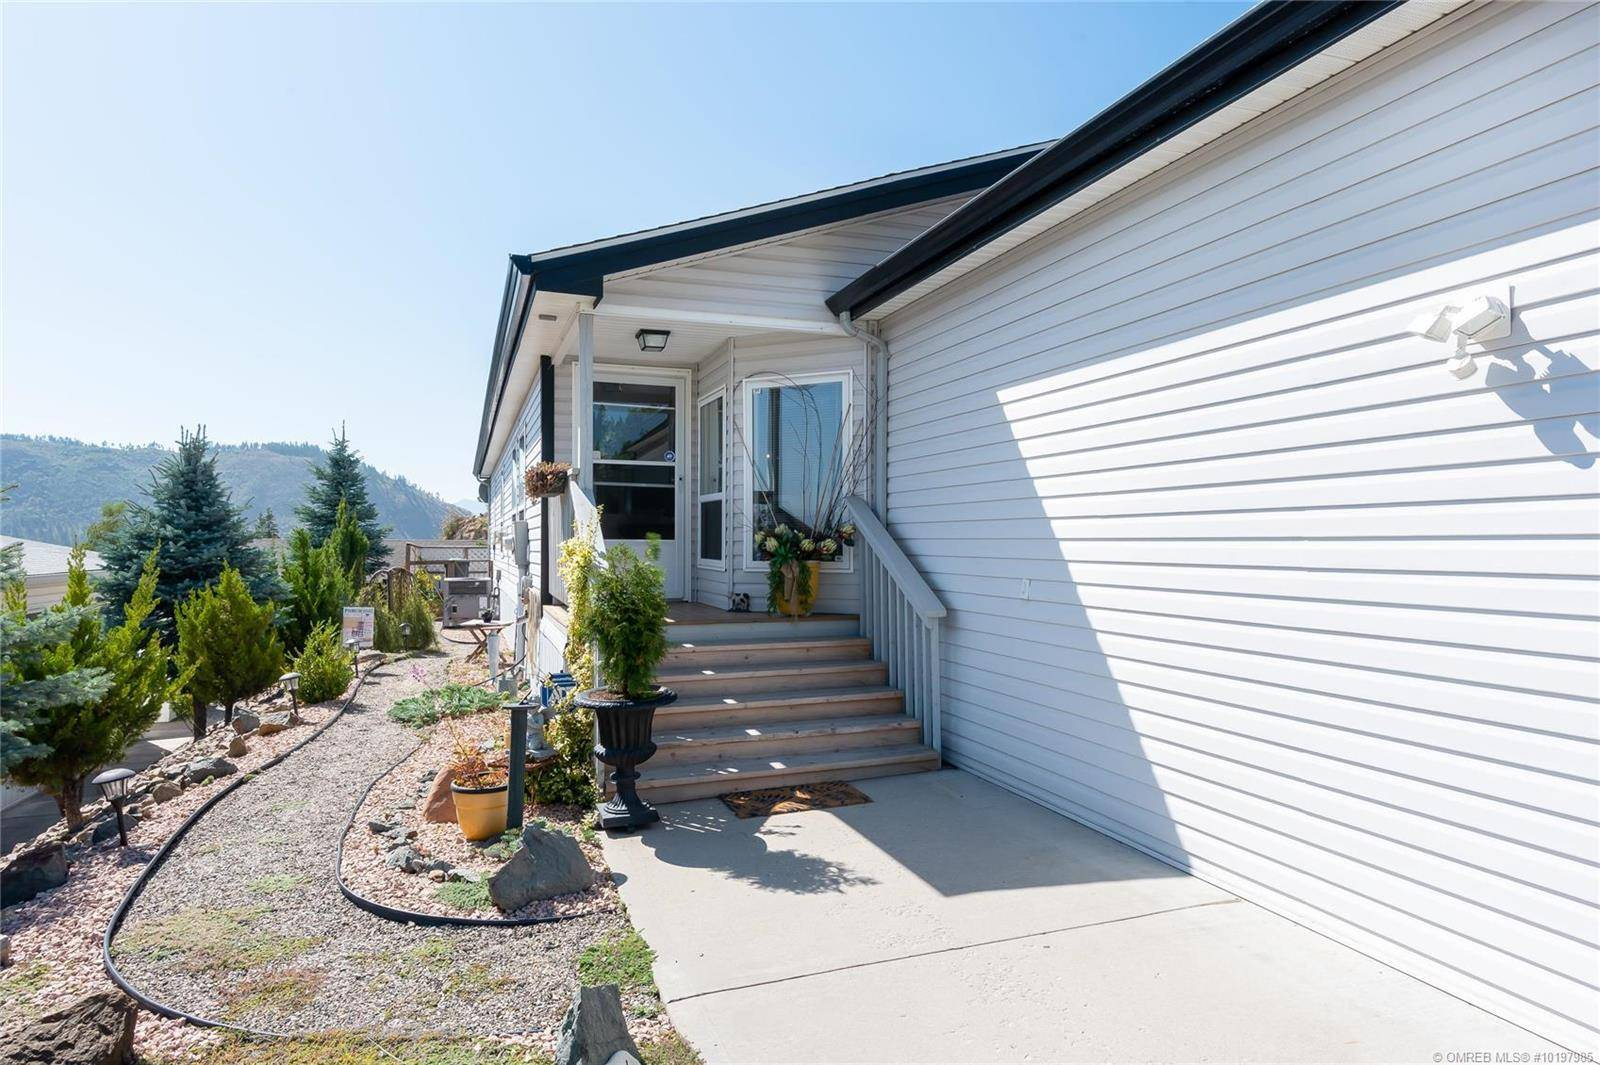 92 - 1750 Lenz Road, West Kelowna | Image 2